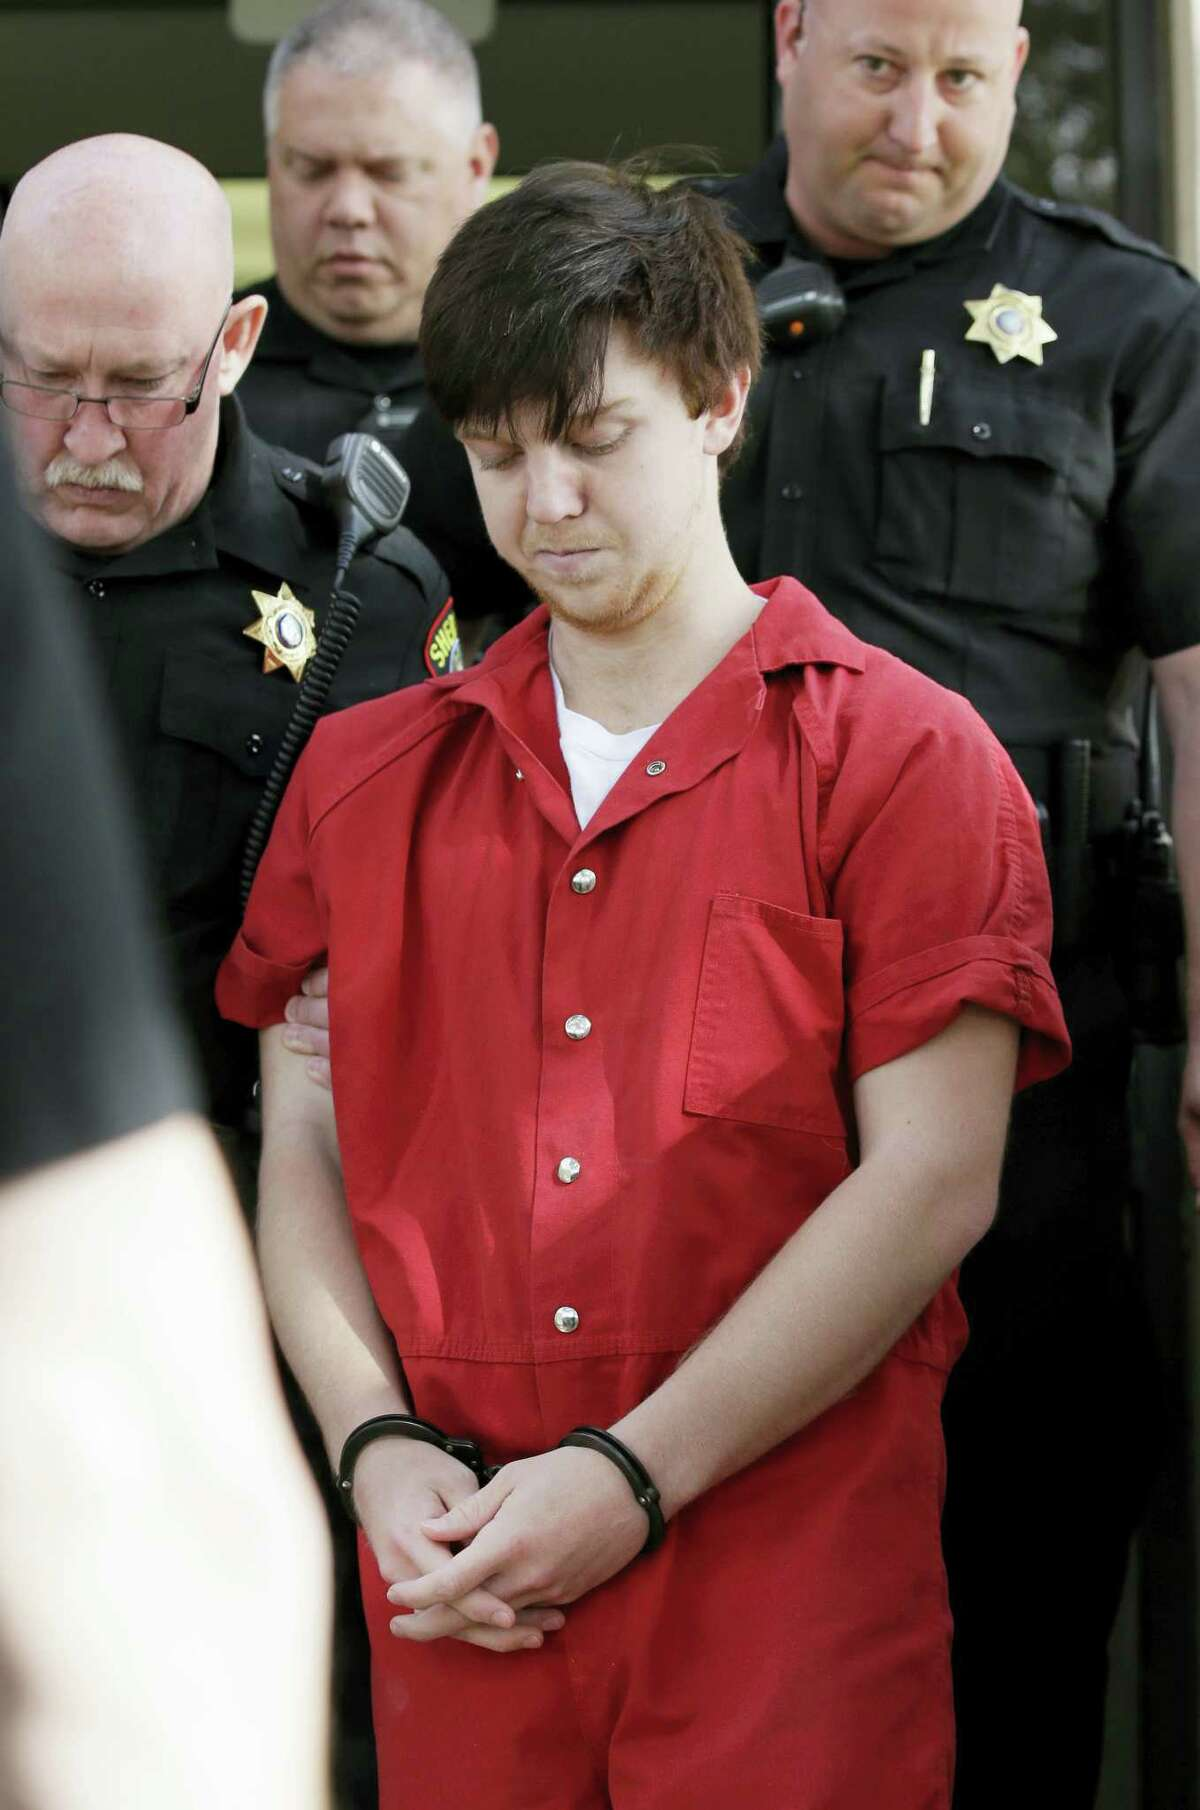 """Ethan Couch is led by sheriff deputies after a juvenile court for a hearing Friday, Feb. 19, 2016, in Fort Worth, Texas. A Texas judge ruled Couch, who used an """"affluenza"""" defense in a fatal drunken-driving wreck will be moved to adult court, meaning the teen could face jail time for the 2013 wreck that killed four people."""